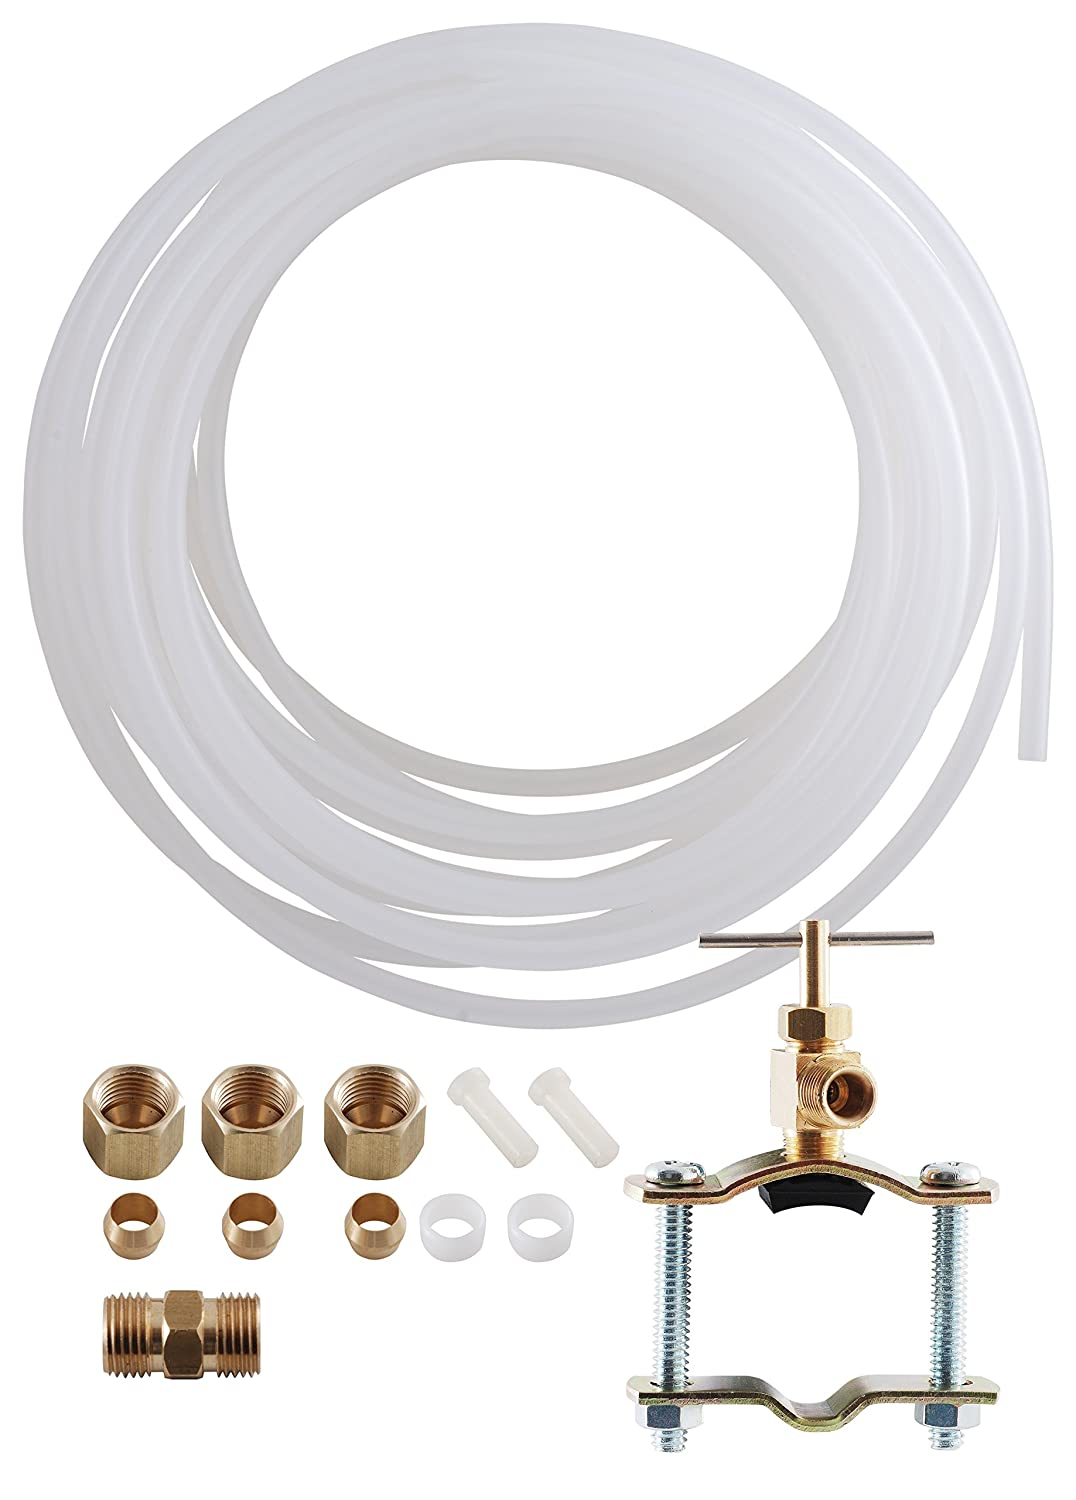 Ice Maker And Humidifier Installation Kit by Choice Hose And Tubing | Poly Tubing, Includes Everything Necessary For Complete Installation